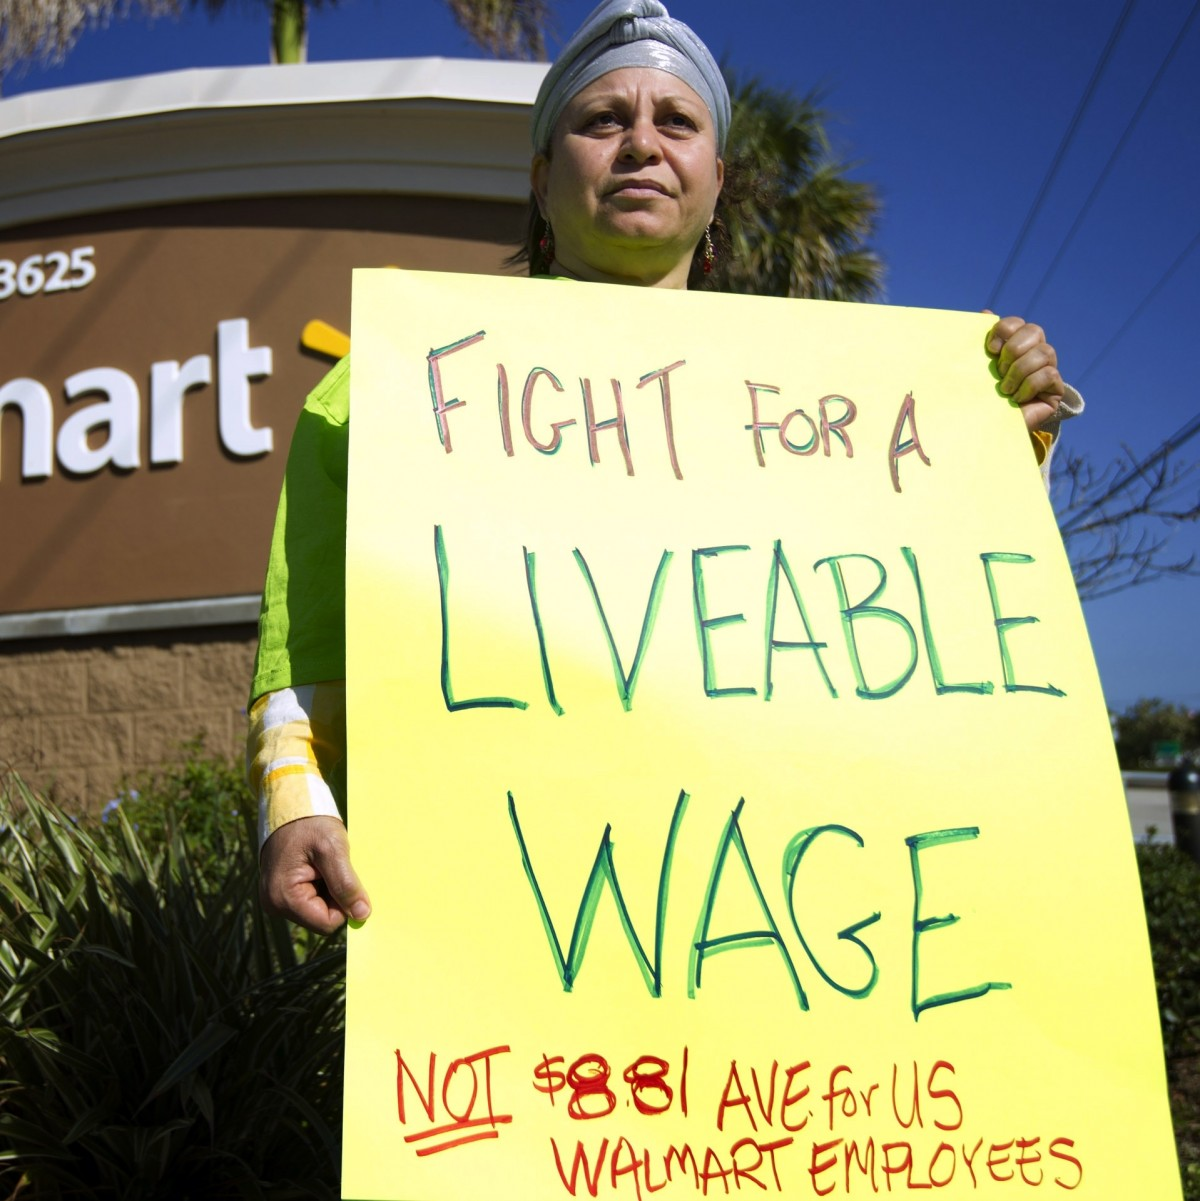 UPDATE: Wal-Mart Workers Launch Surprise Strike Over Safety Issues